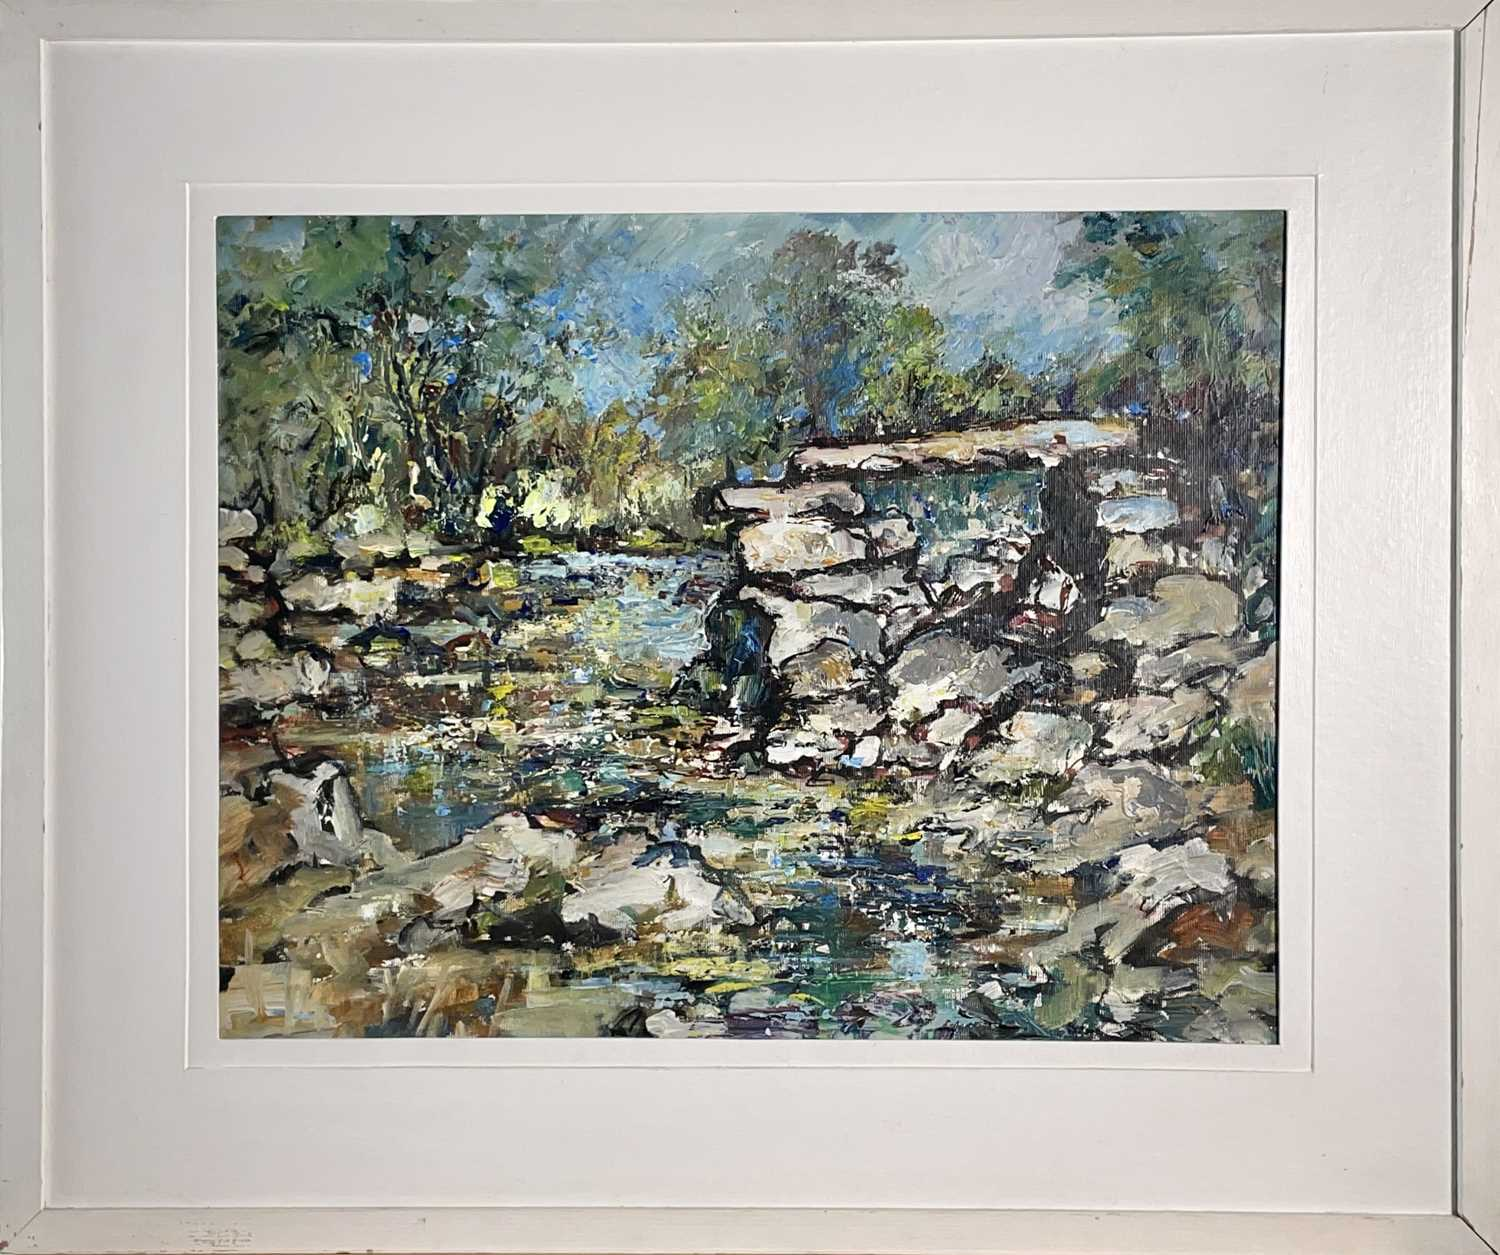 Yram ALLETS Dartmoor Stream Oil on board Signed and inscribed to verso 36 x 46cm - Image 3 of 3